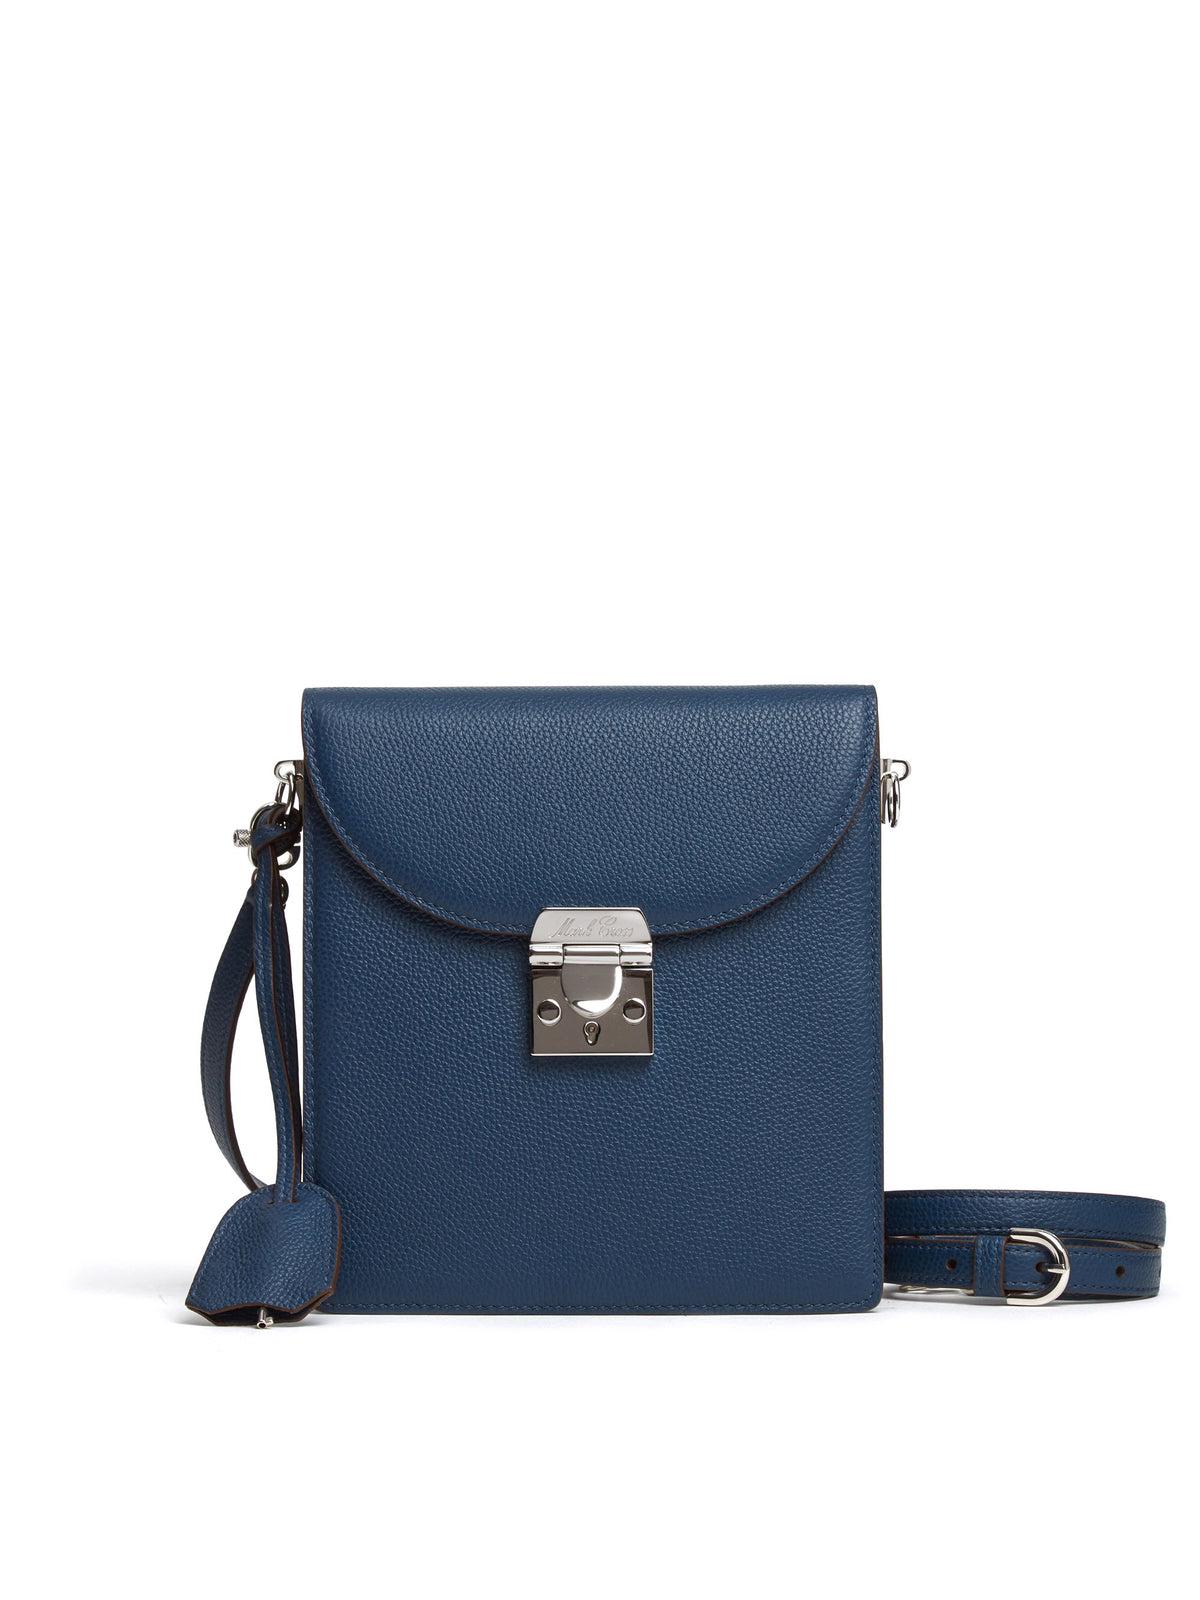 Mark Cross Patrick Leather Crossbody Bag Tumbled Grain Navy Front